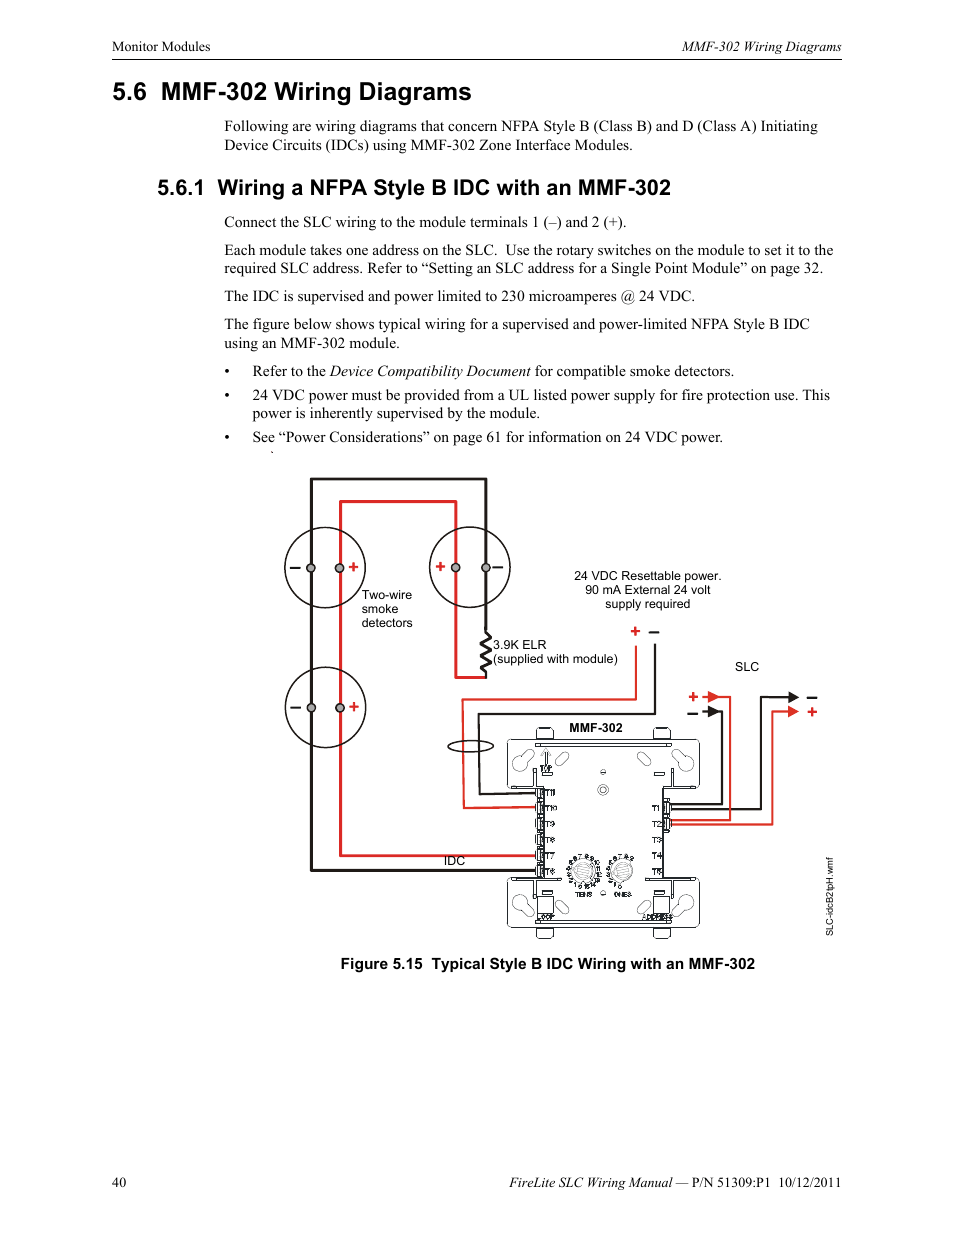 hight resolution of 6 mmf 302 wiring diagrams 1 wiring a nfpa style b idc with an mmf6